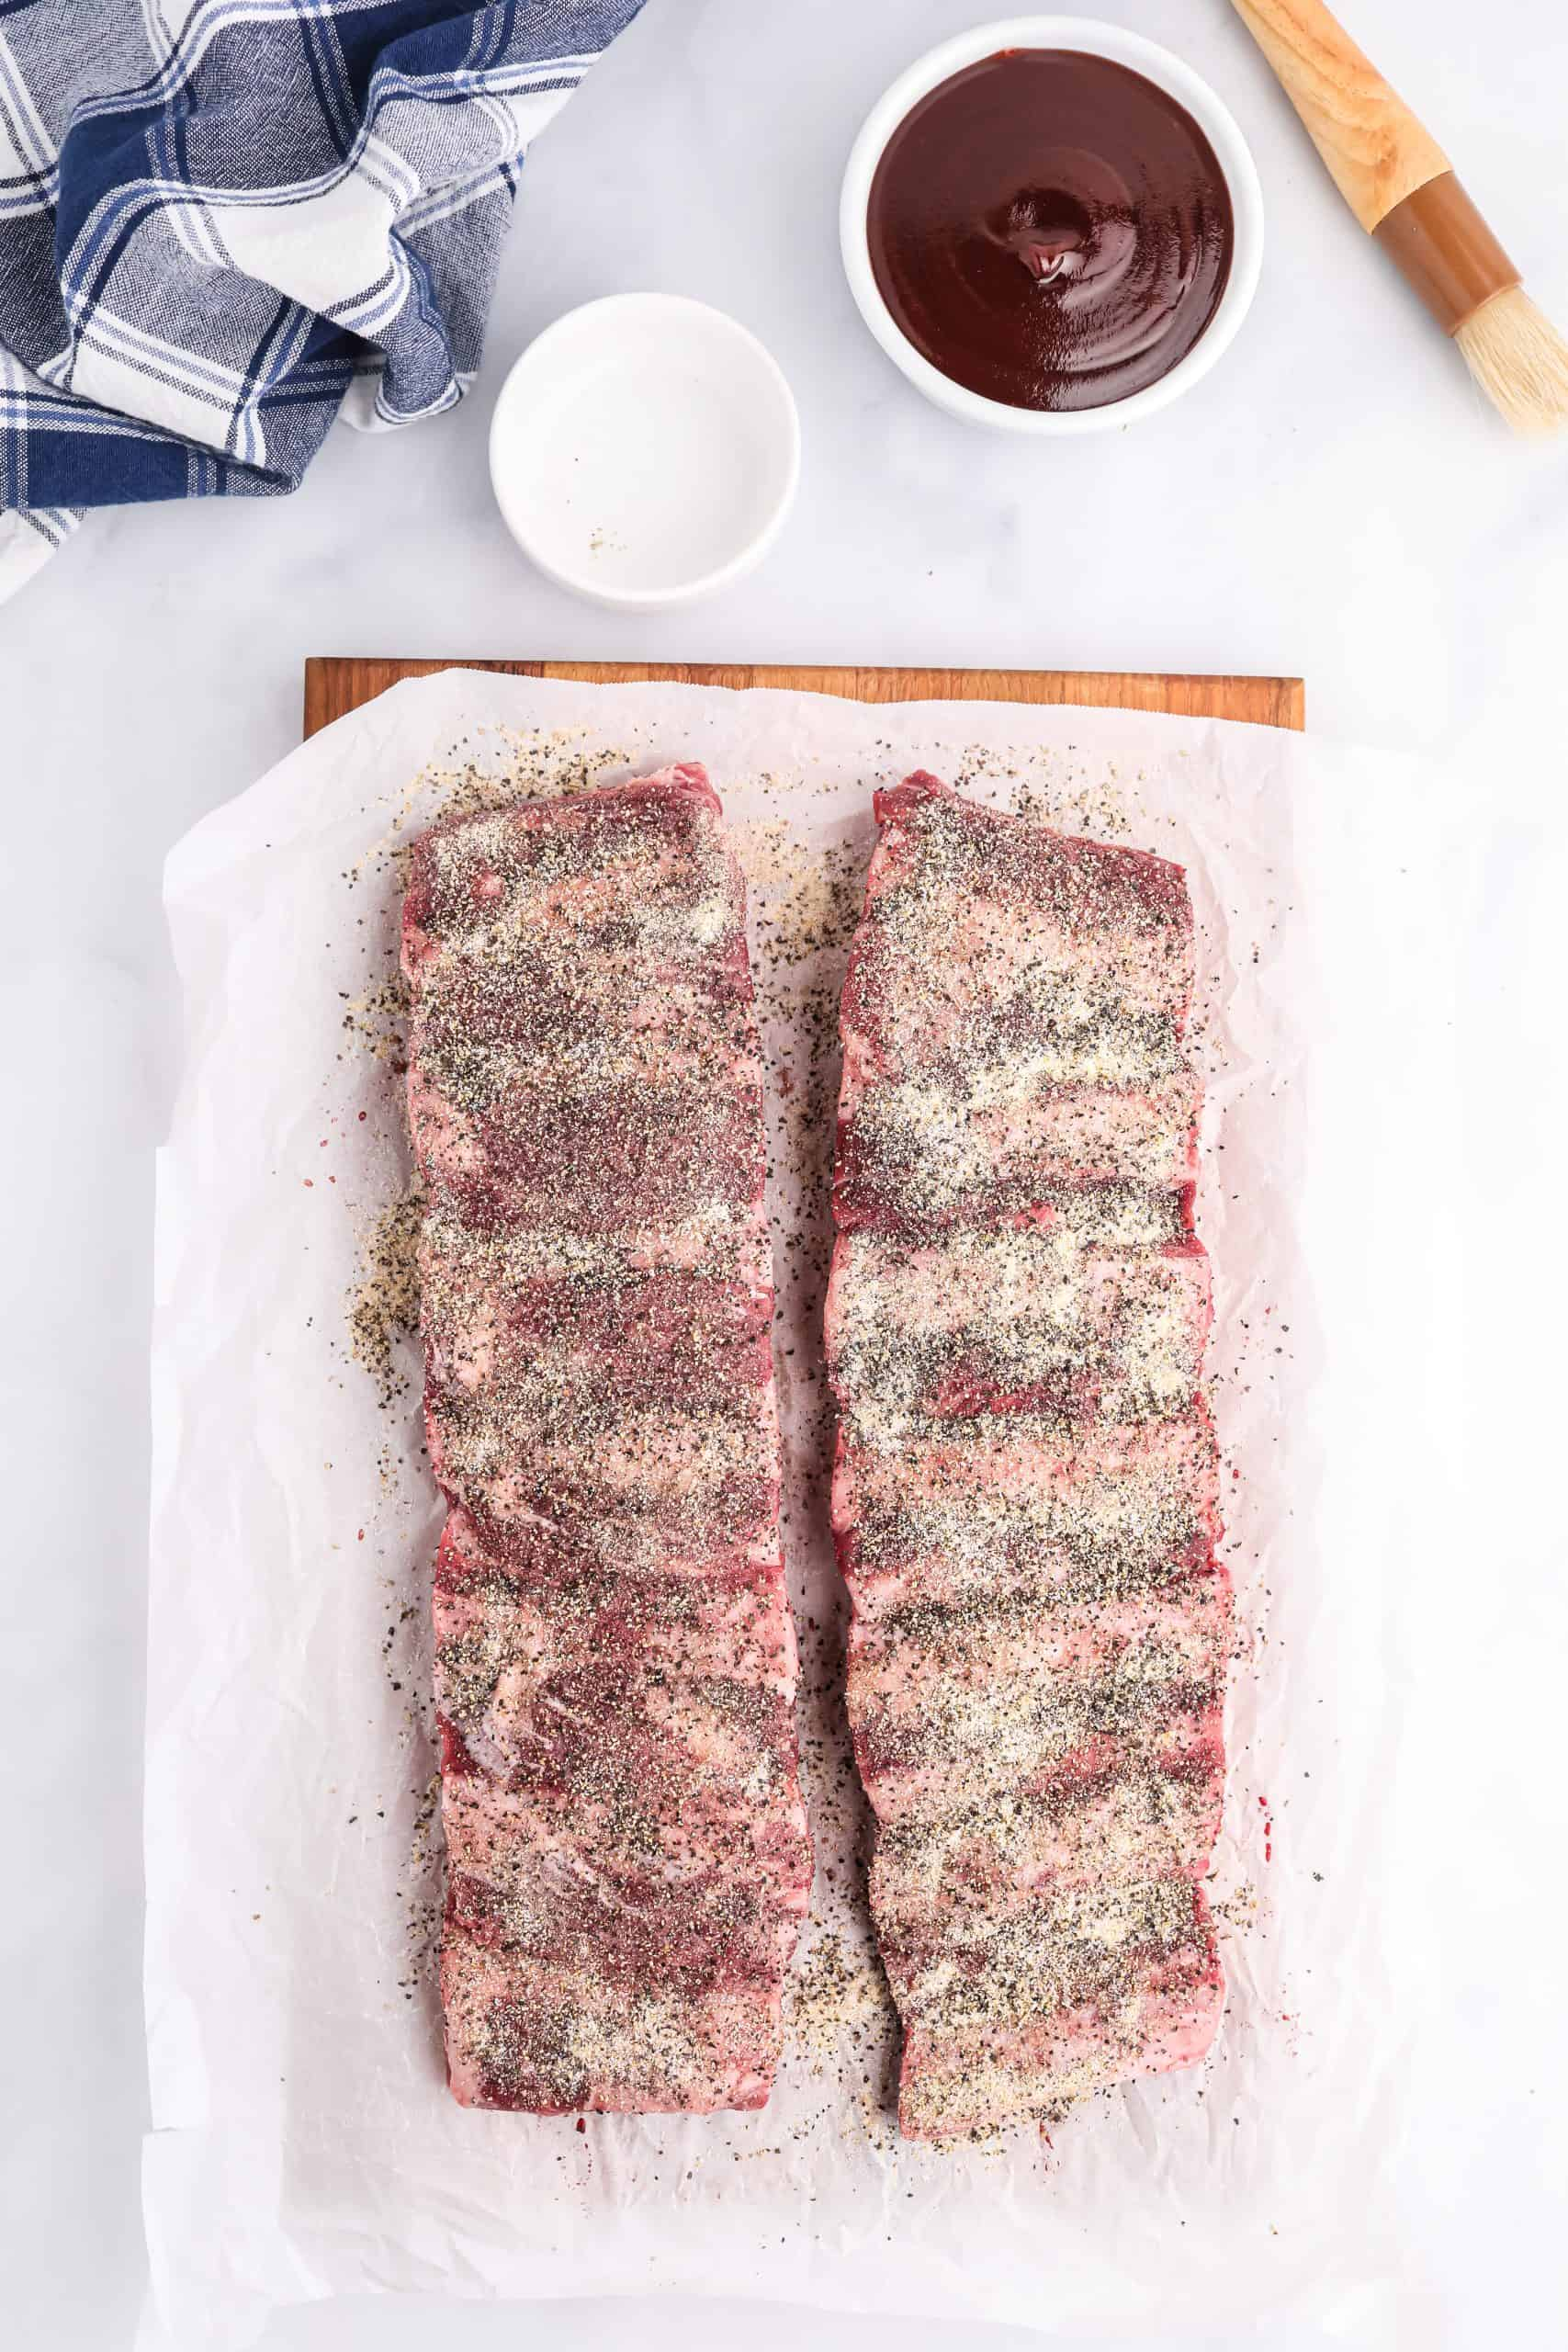 Ribs covered with dry ingredients.